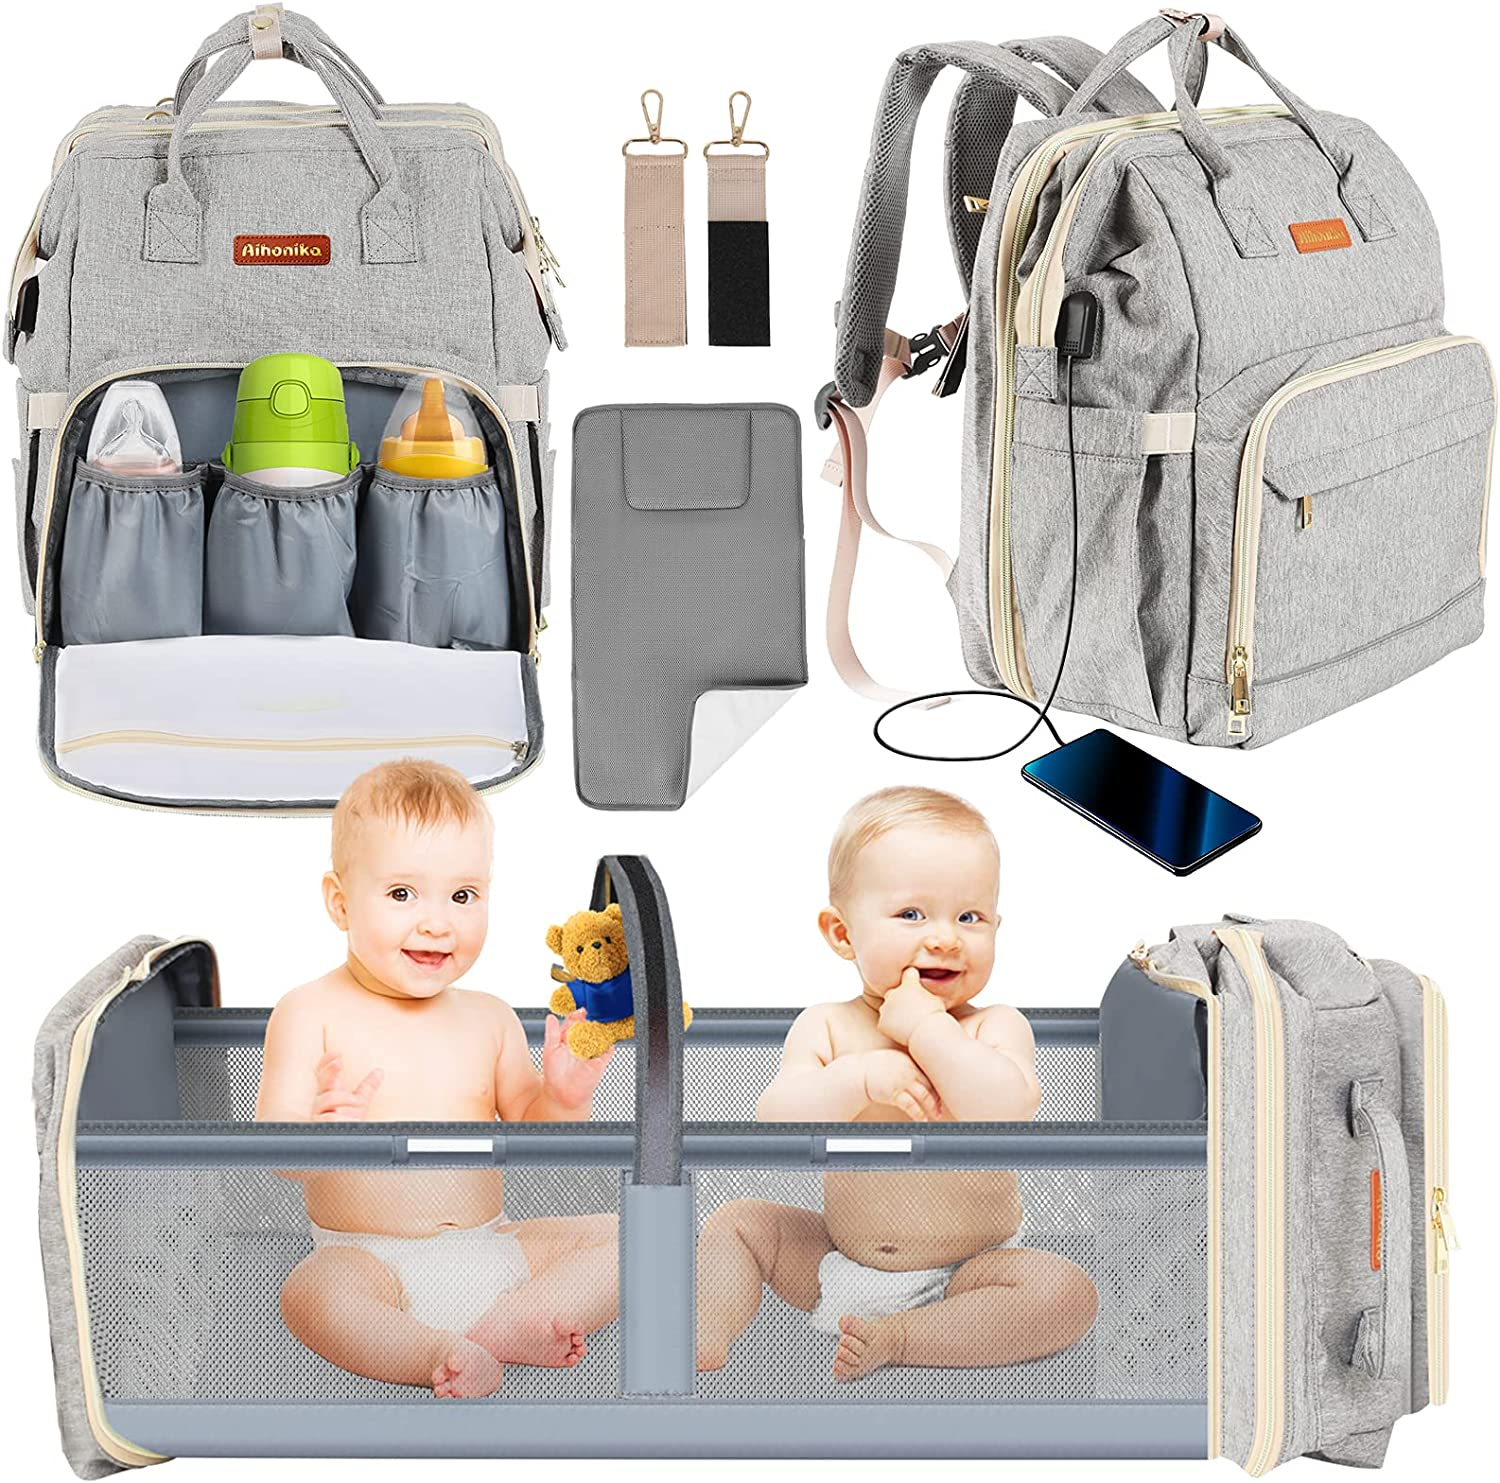 Baby Diaper Bag Backpack with Changing Station,Aihonika Foldable Travel Baby Girls Boys Bags Portable Large Capacity Nappy Bags Diaper Bag with Bassinet Mat,Waterproof Changing Pad,Shade Cloth